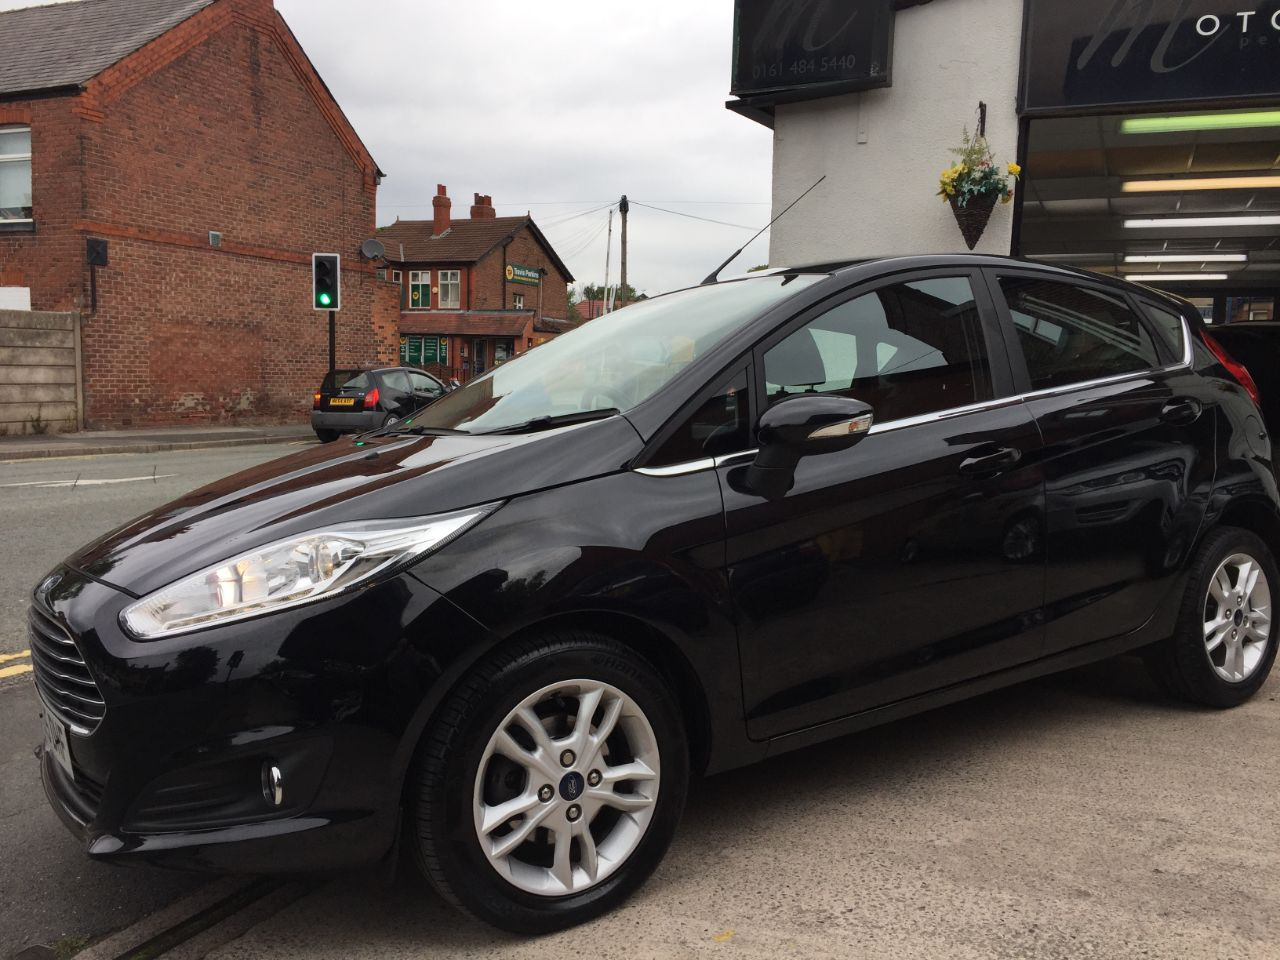 Ford Fiesta 1.0 Zetec 5dr Hatchback Petrol Black at Motorhouse Cheshire Stockport